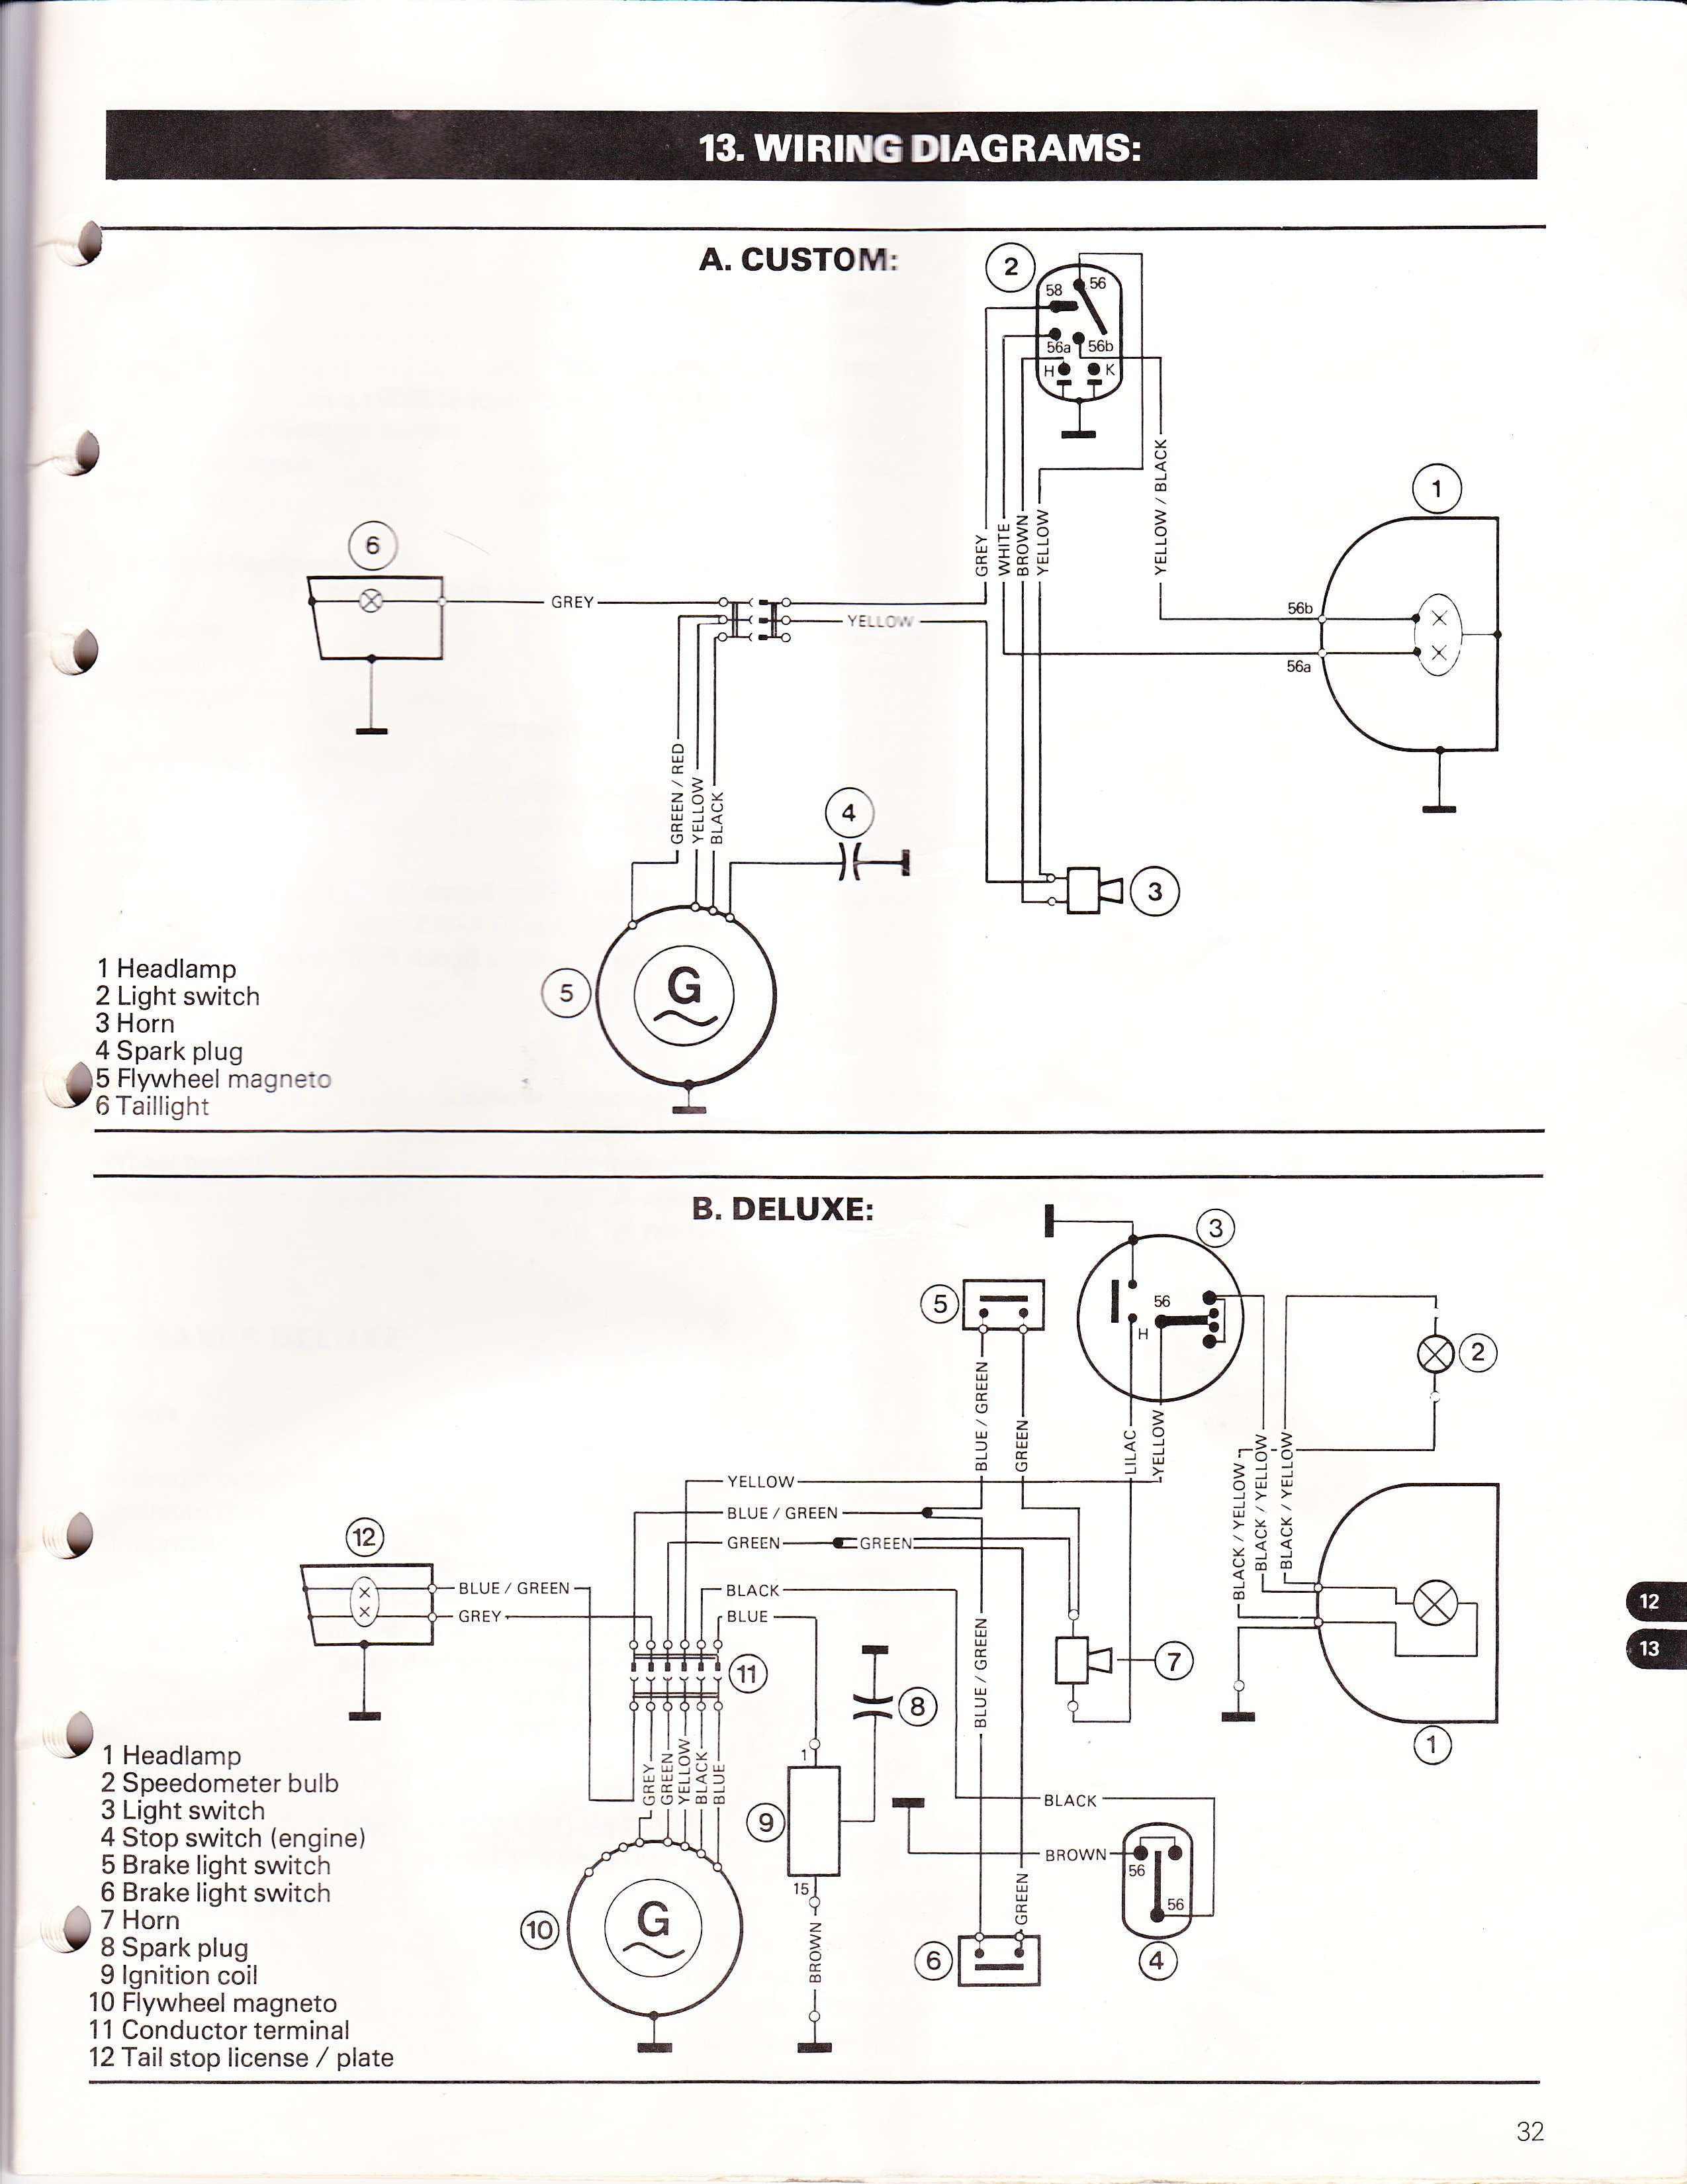 Yaesu Rotor Wiring Diagram as well T O in addition Revo likewise Induction Cooktop Diagram besides 12 Si 1 Wire Alternater Conversion. on control wiring diagram wiki